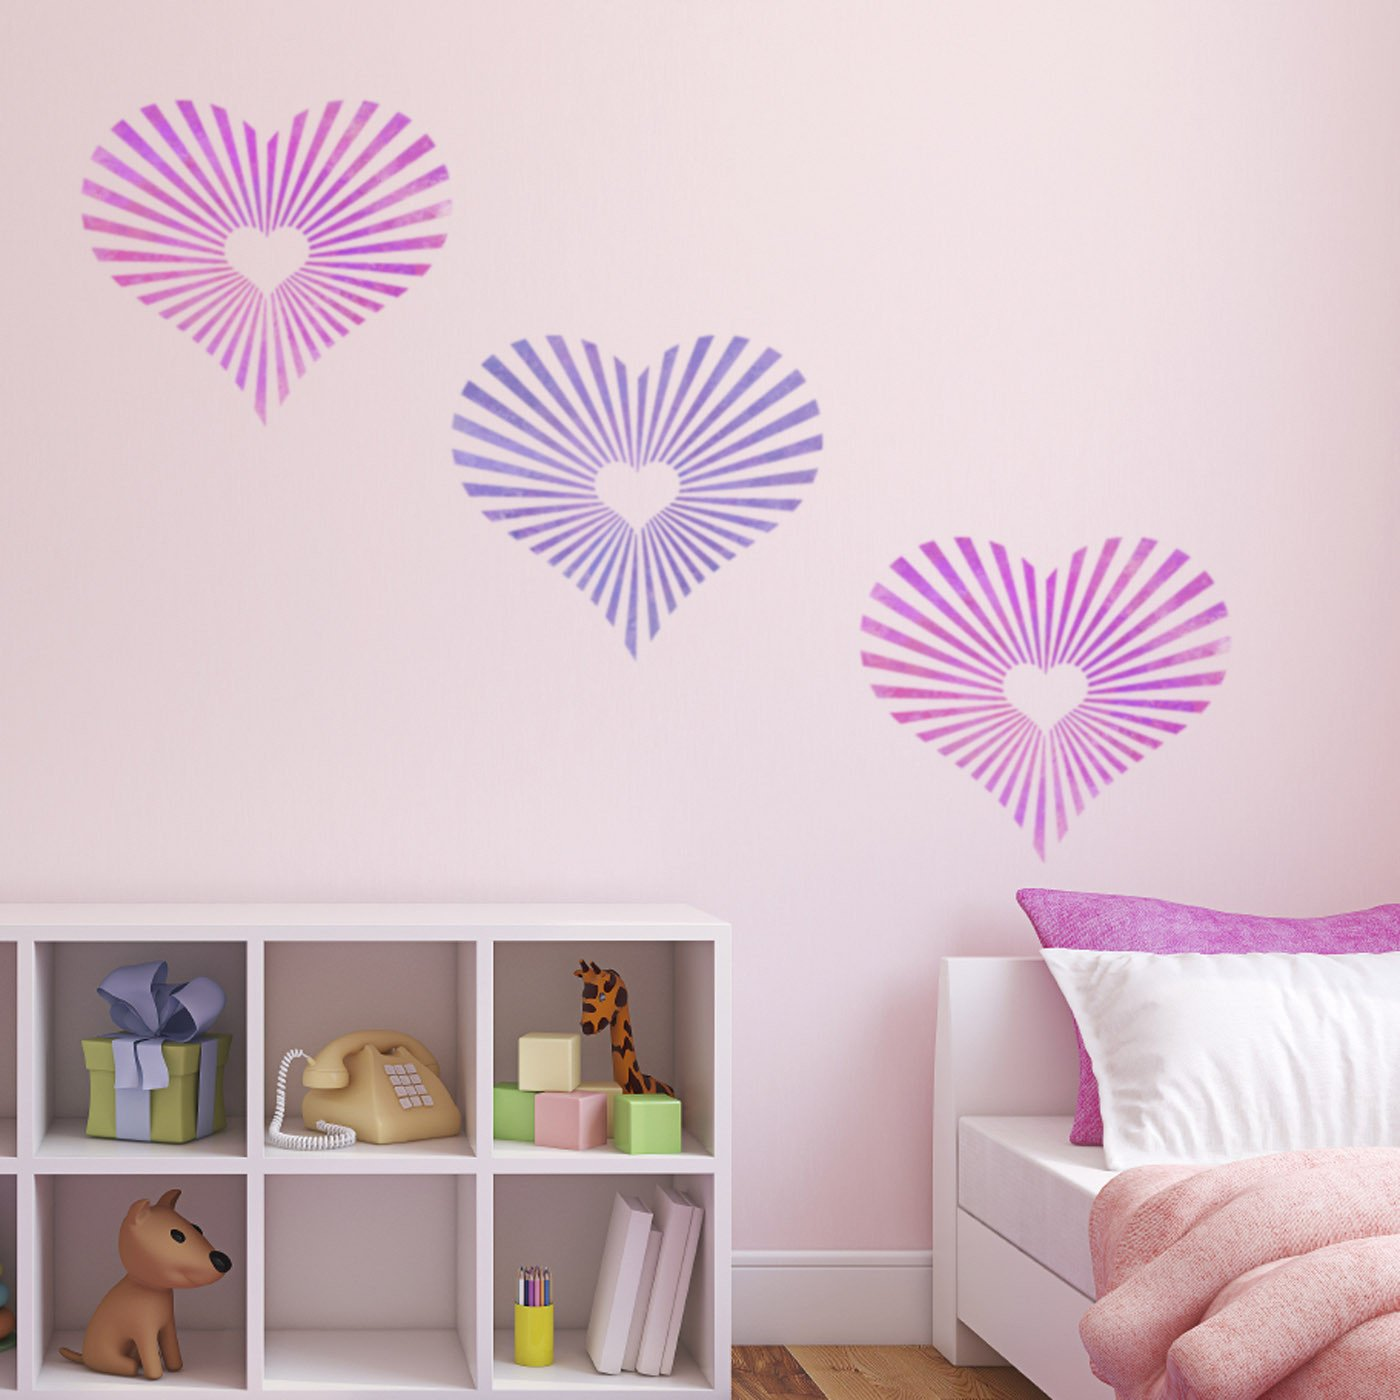 CraftStar Sunburst Heart Pattern Stencil in pinks